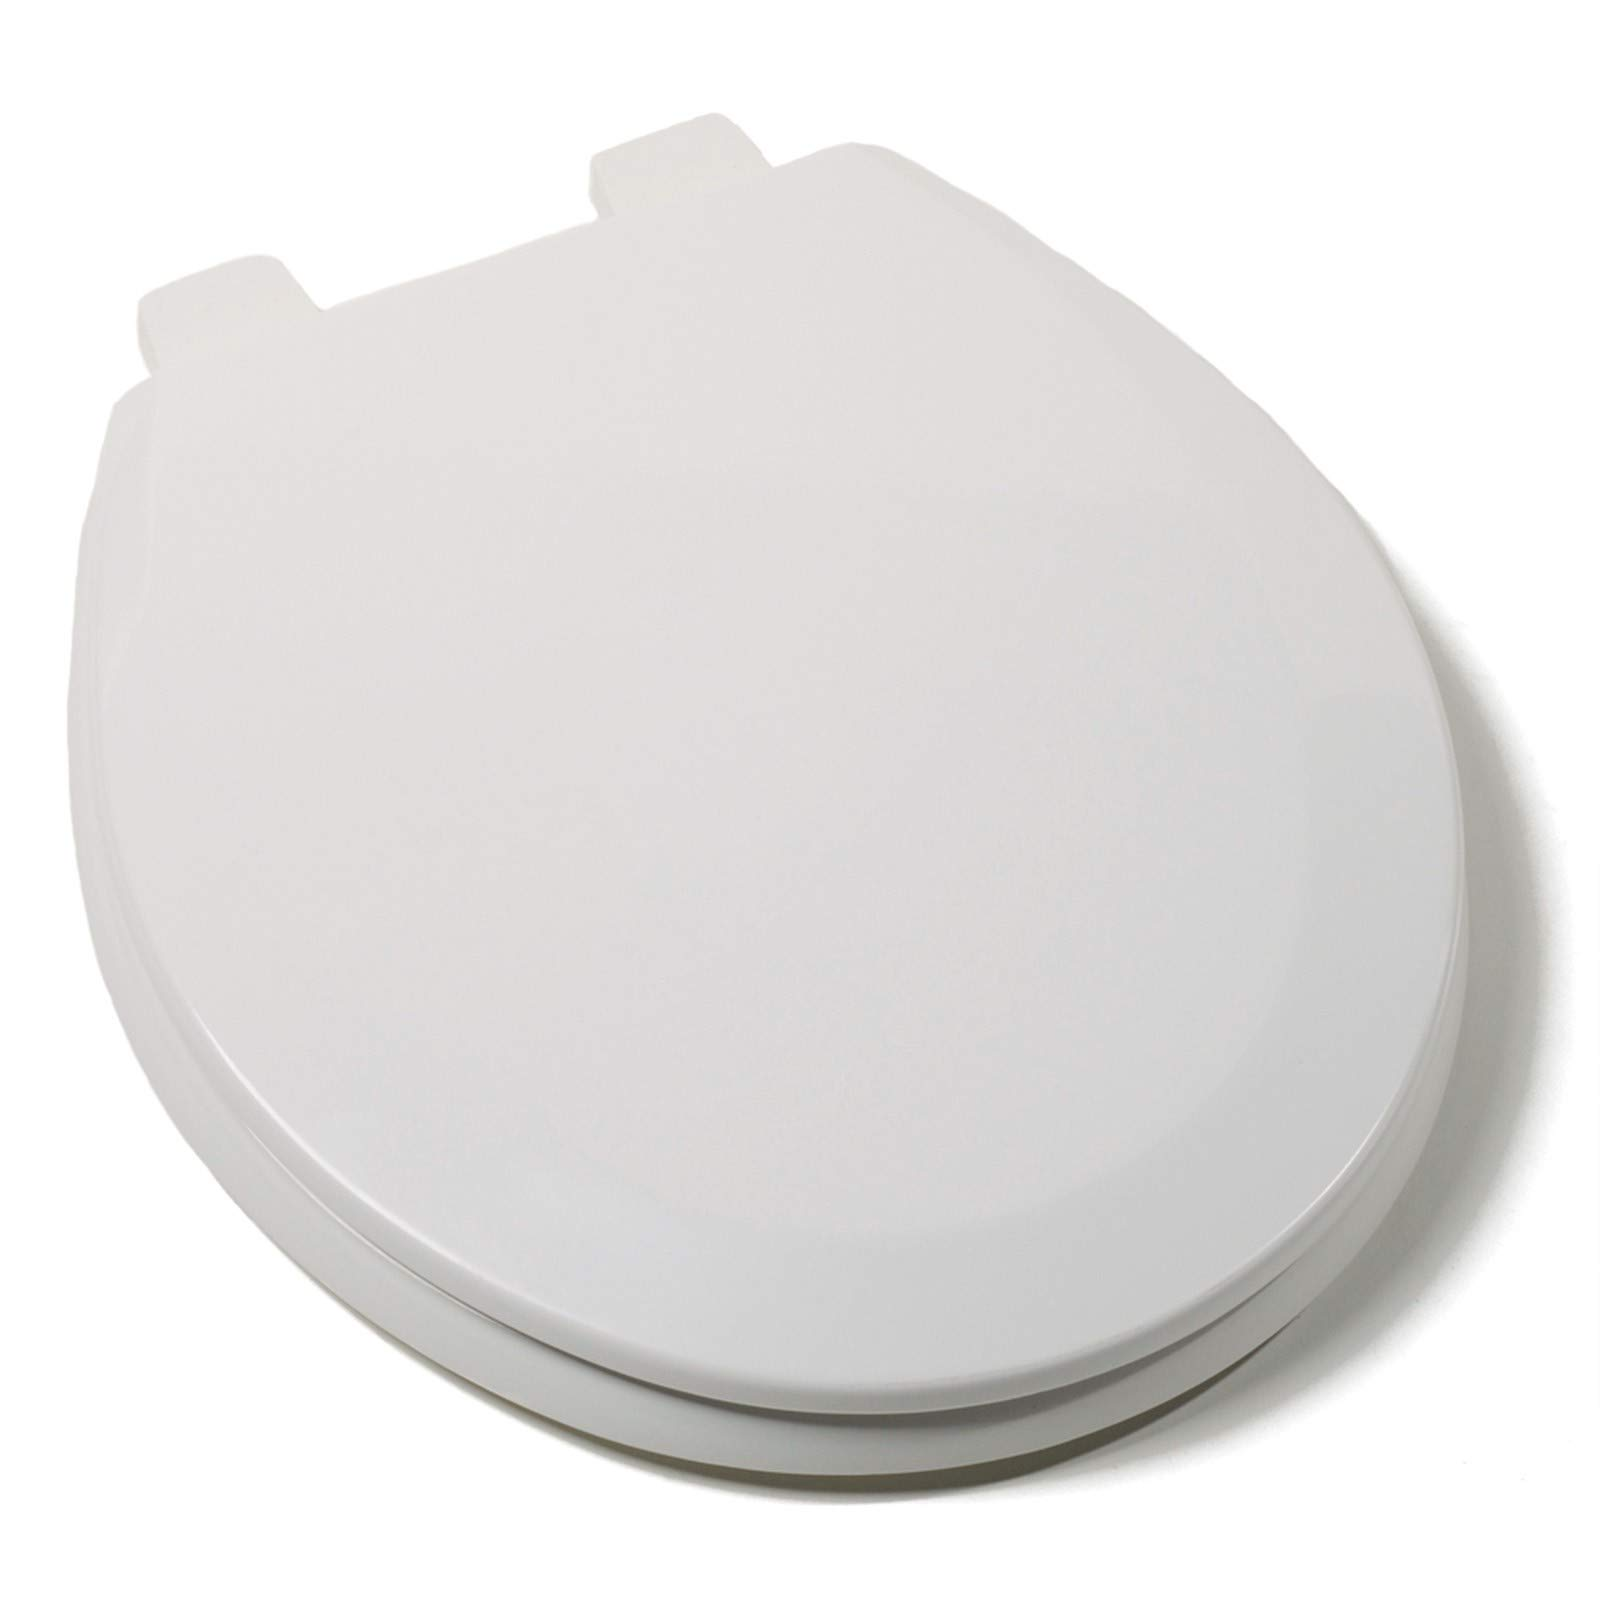 Premium Round Wood Toilet Seat with Cover, White, Quick Clean, Adjustable Hinges, Fits All Round Toilets by HowPlum